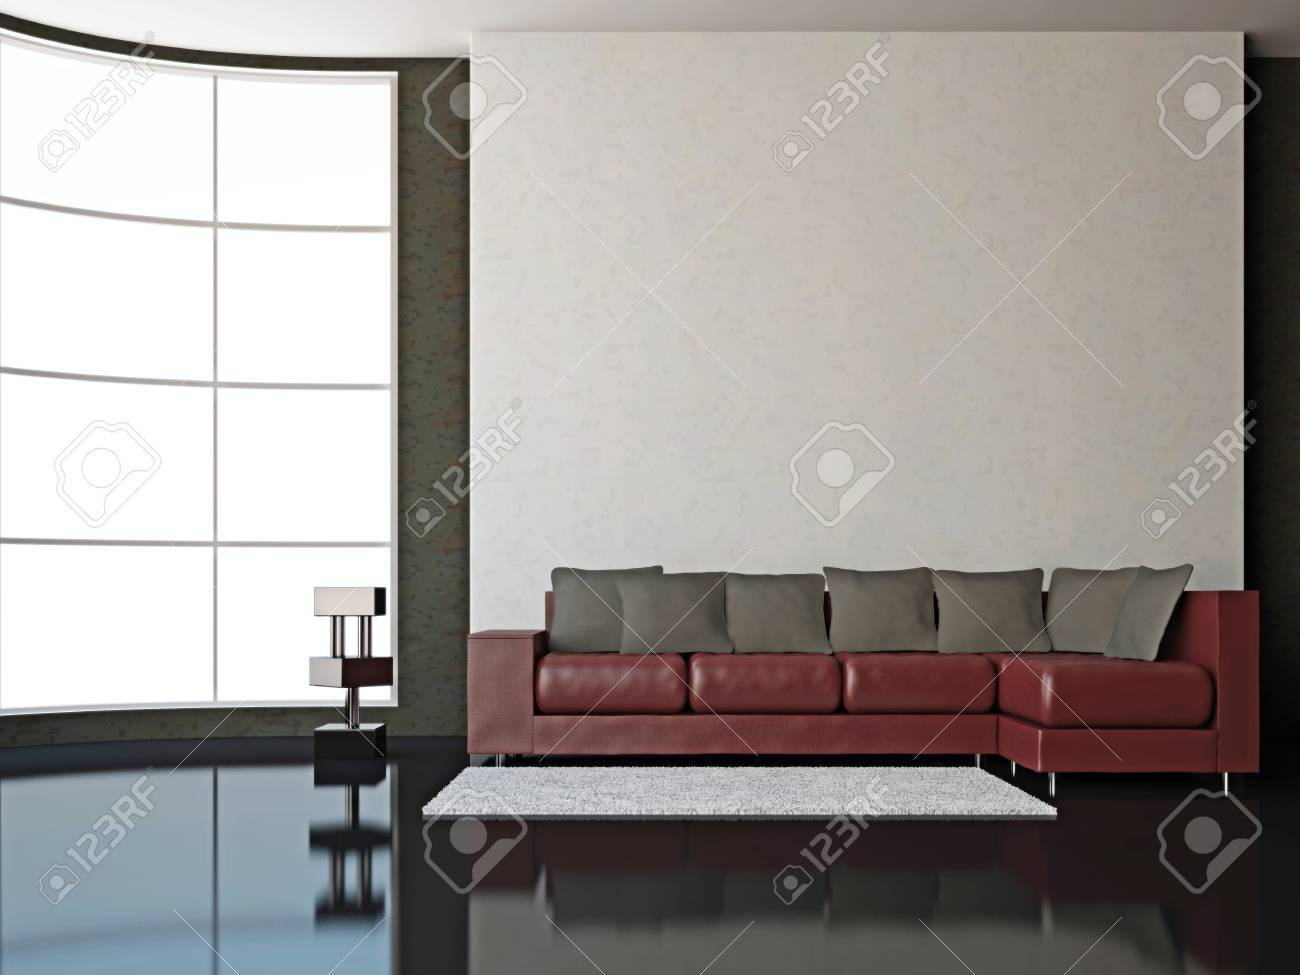 A Room Interior With Sofa Near Big Window Stock Photo Picture And